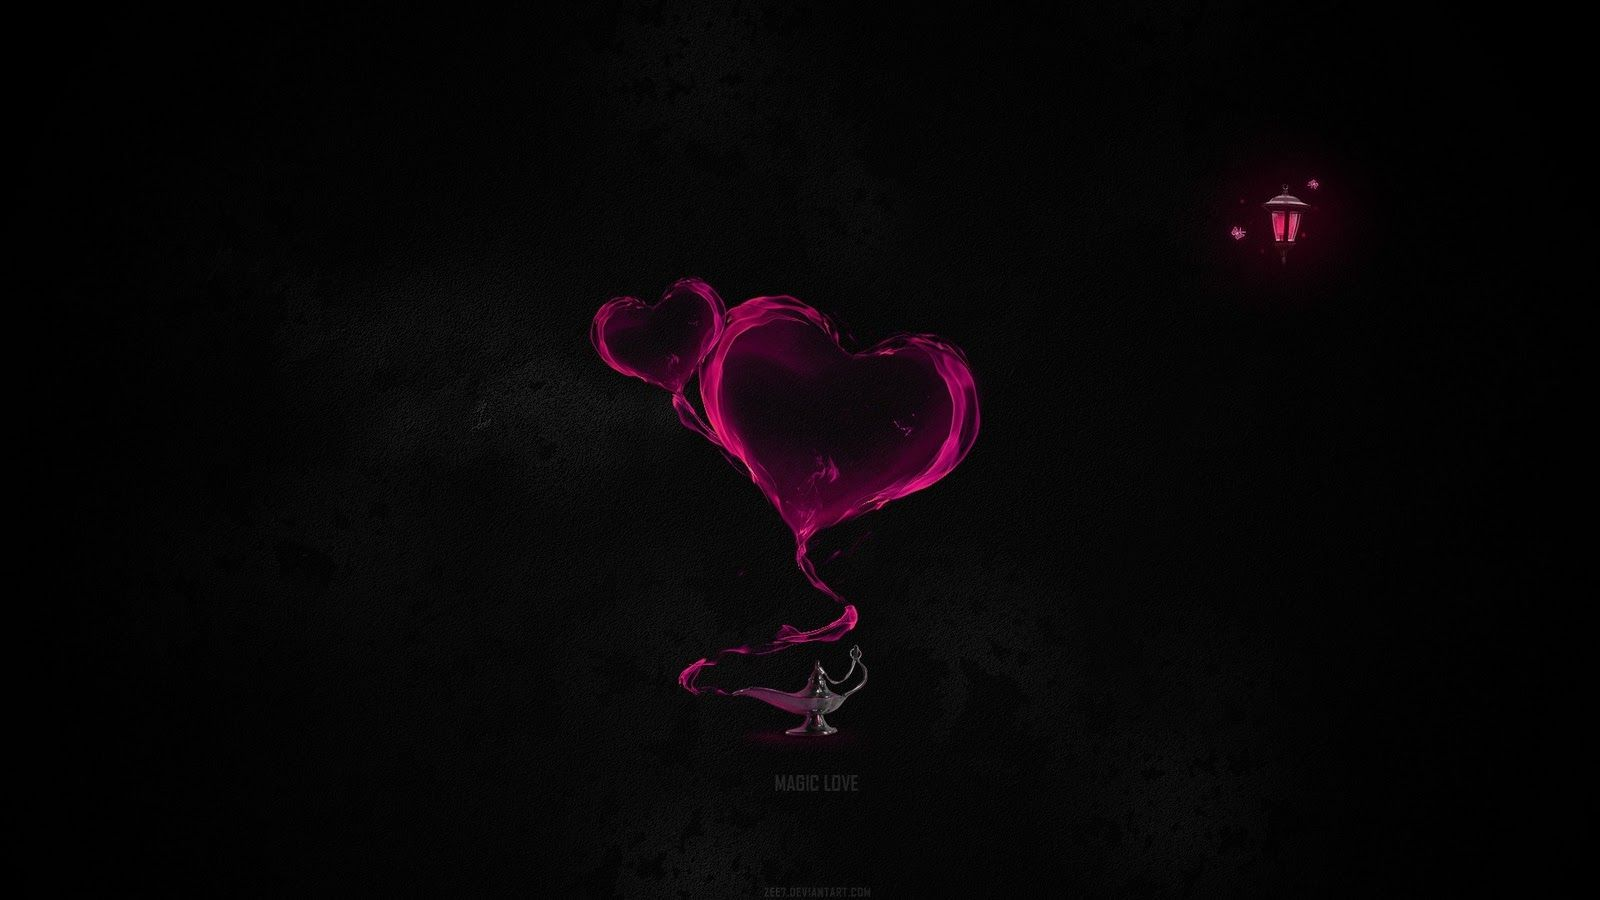 Www Love Hd Wallpaper Com